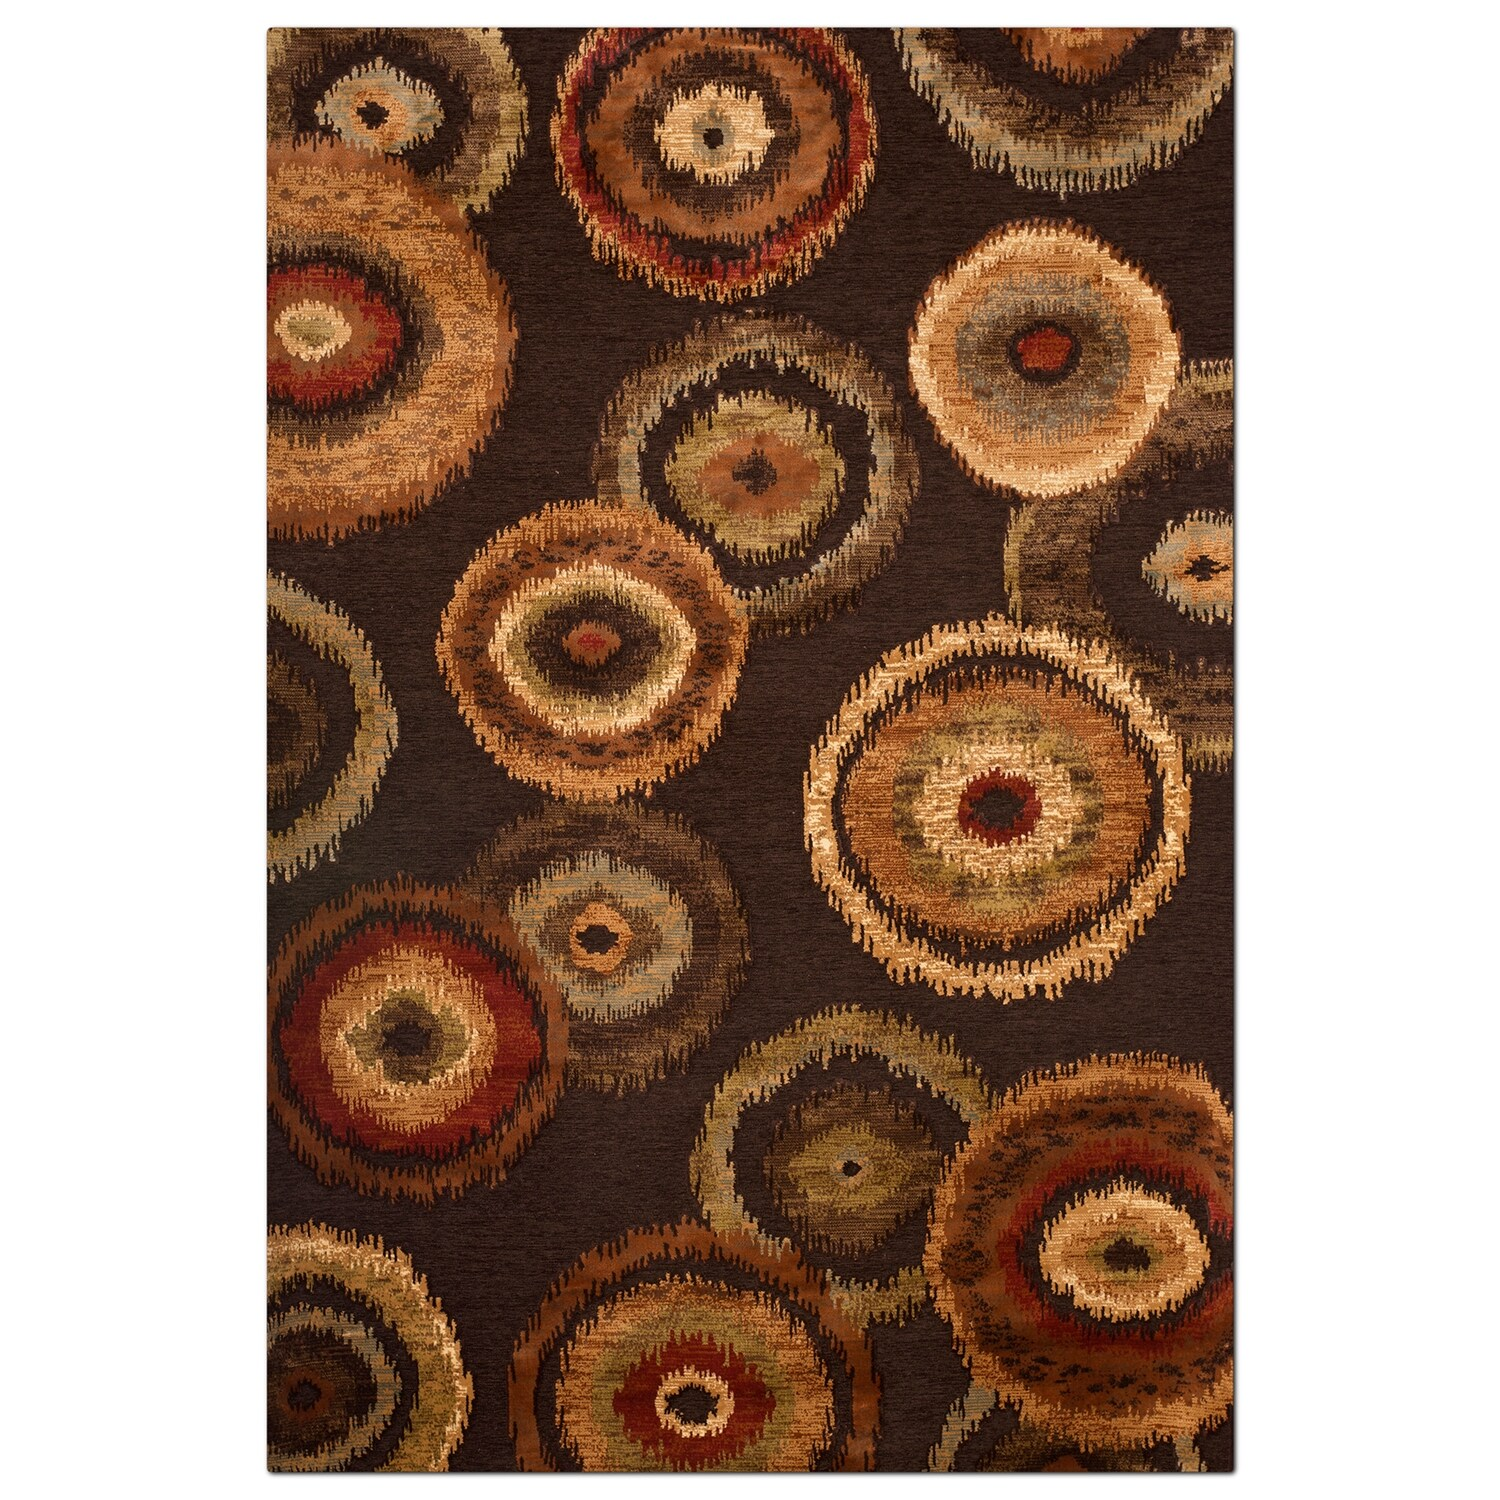 Rugs - Sonoma Adeline Area Rug - Medium Brown and Beige